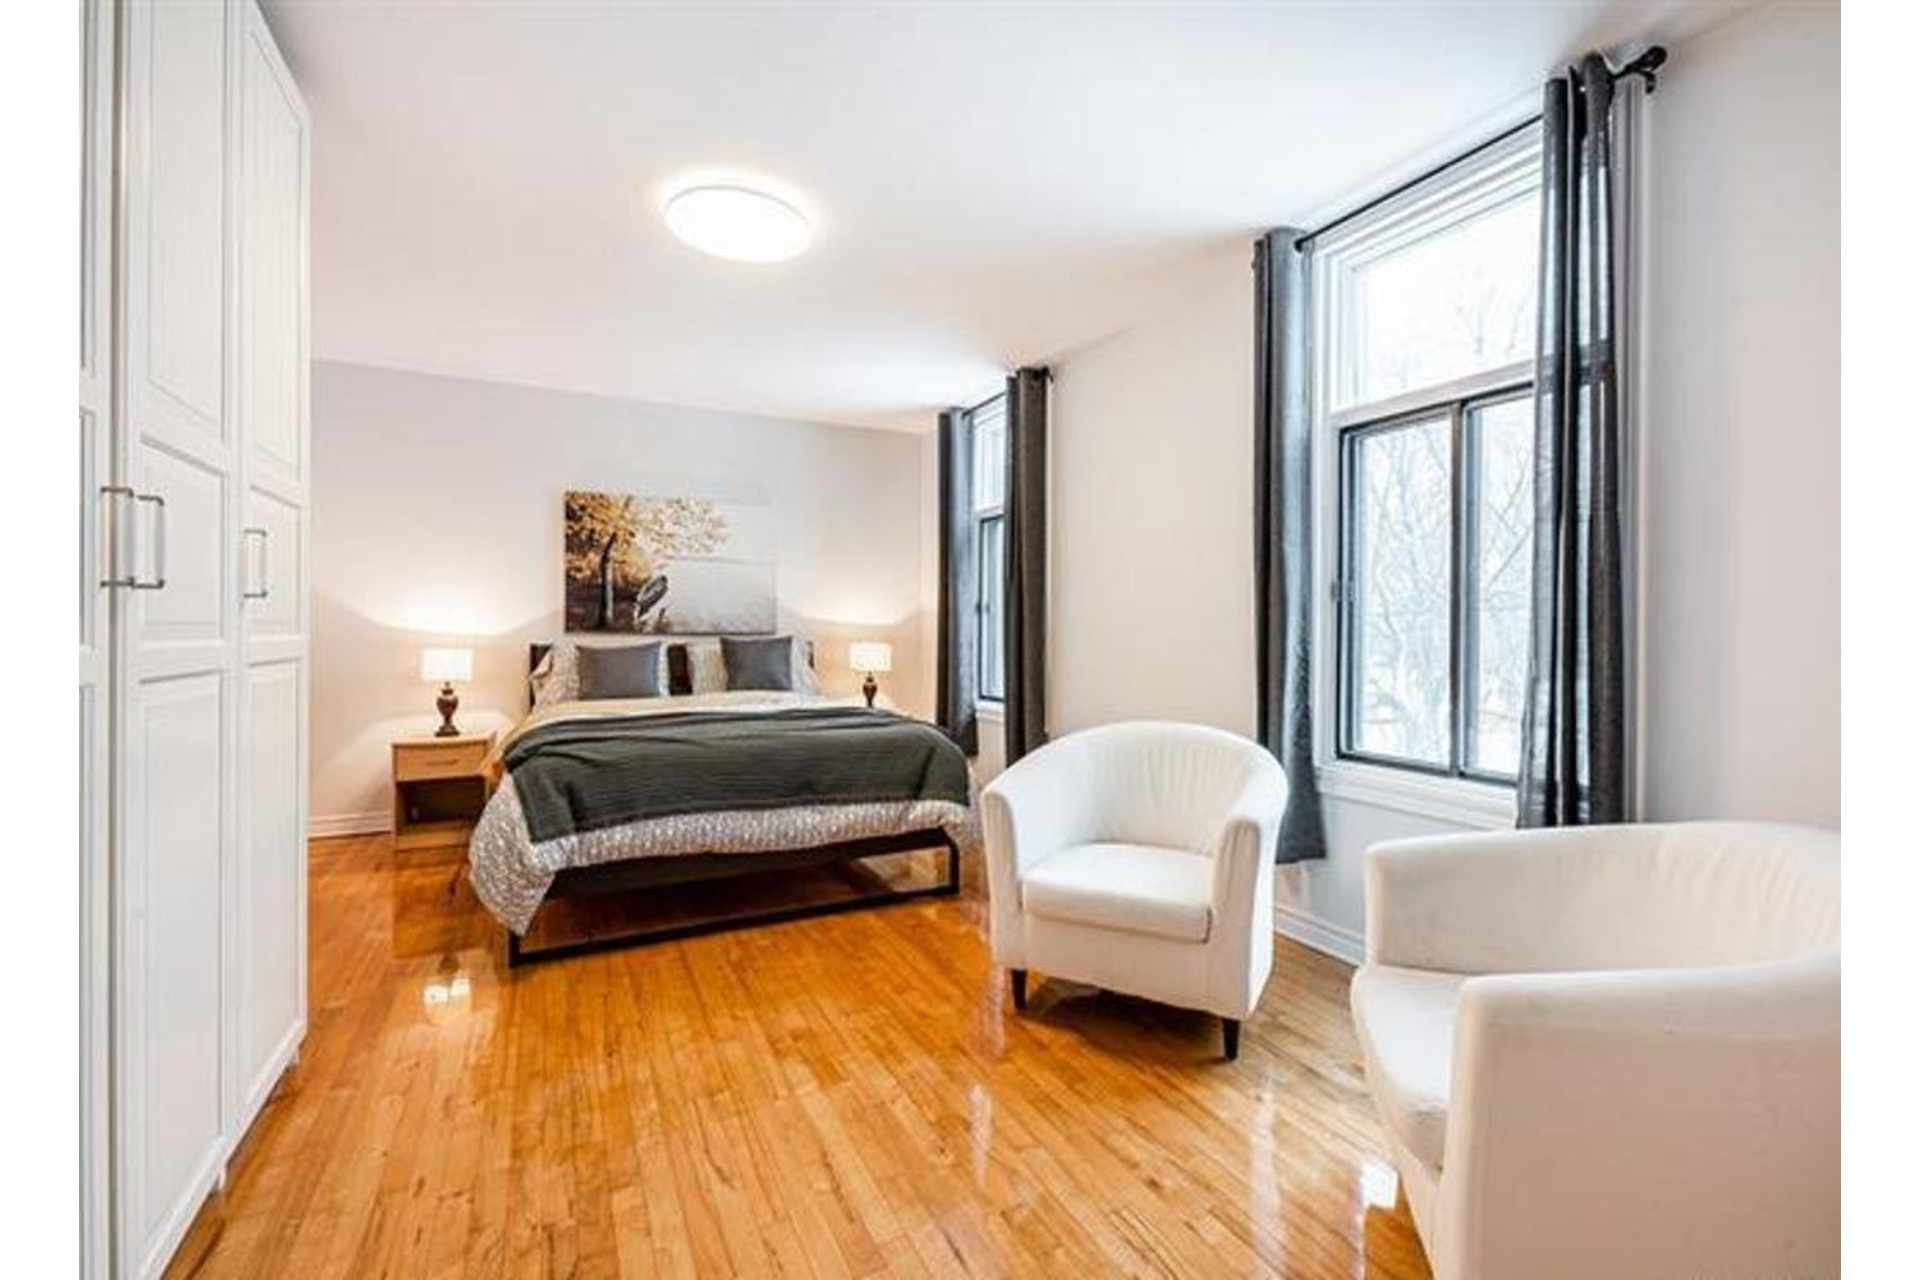 image 10 - Triplex For sale Le Sud-Ouest Montréal  - 5 rooms